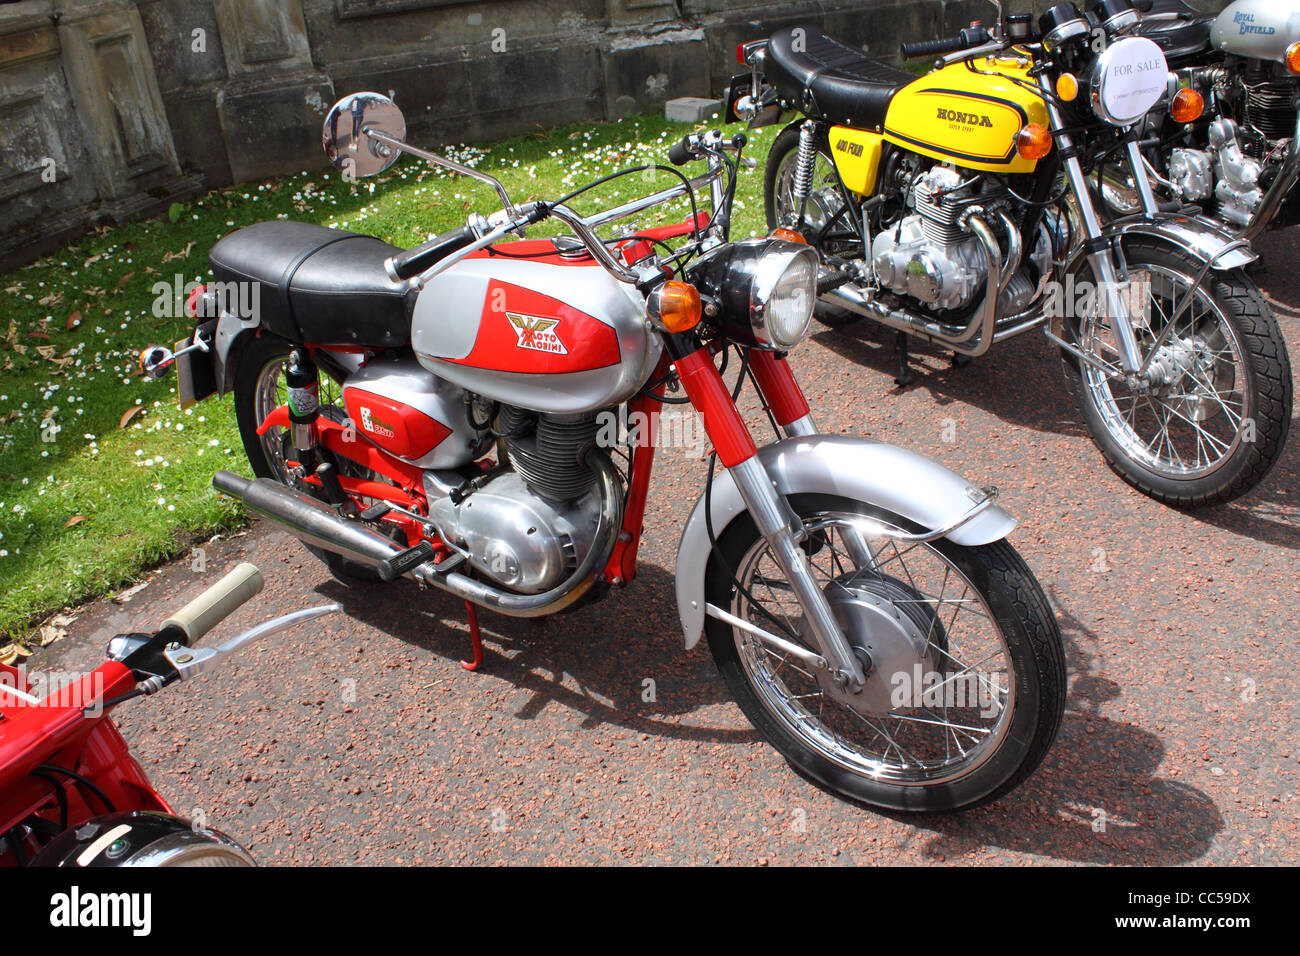 1960's Moto Morini Settebello 250 classic motorcycle at a show in Northern Ireland - Stock Image